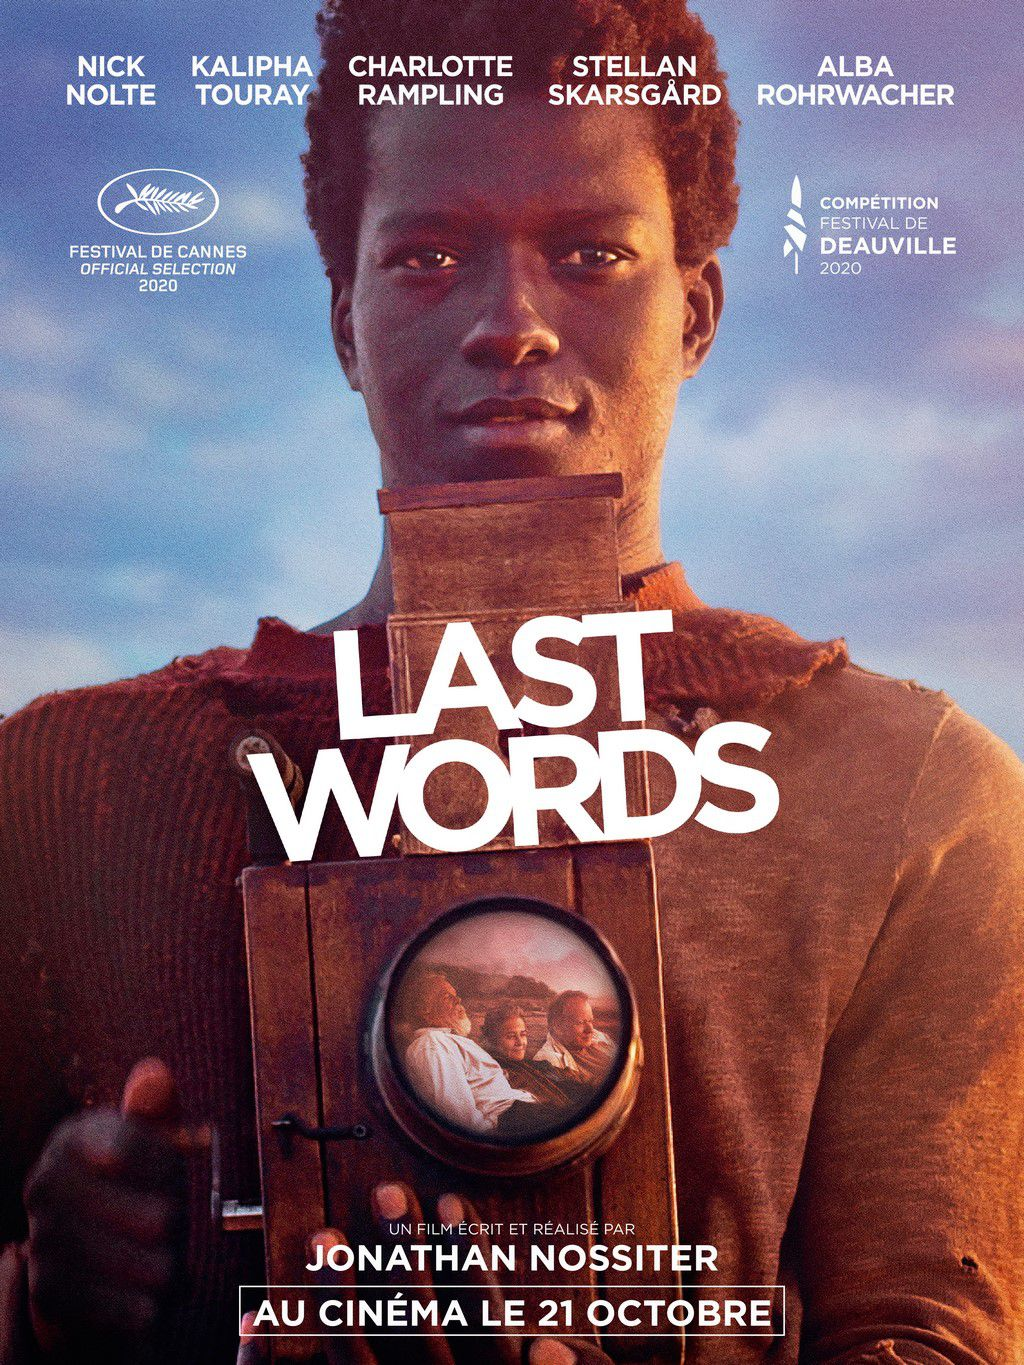 LAST WORDS avec Kalipha Touray, Nick Nolte, Charlotte Rampling...au Cinéma le 21 Octobre 2020